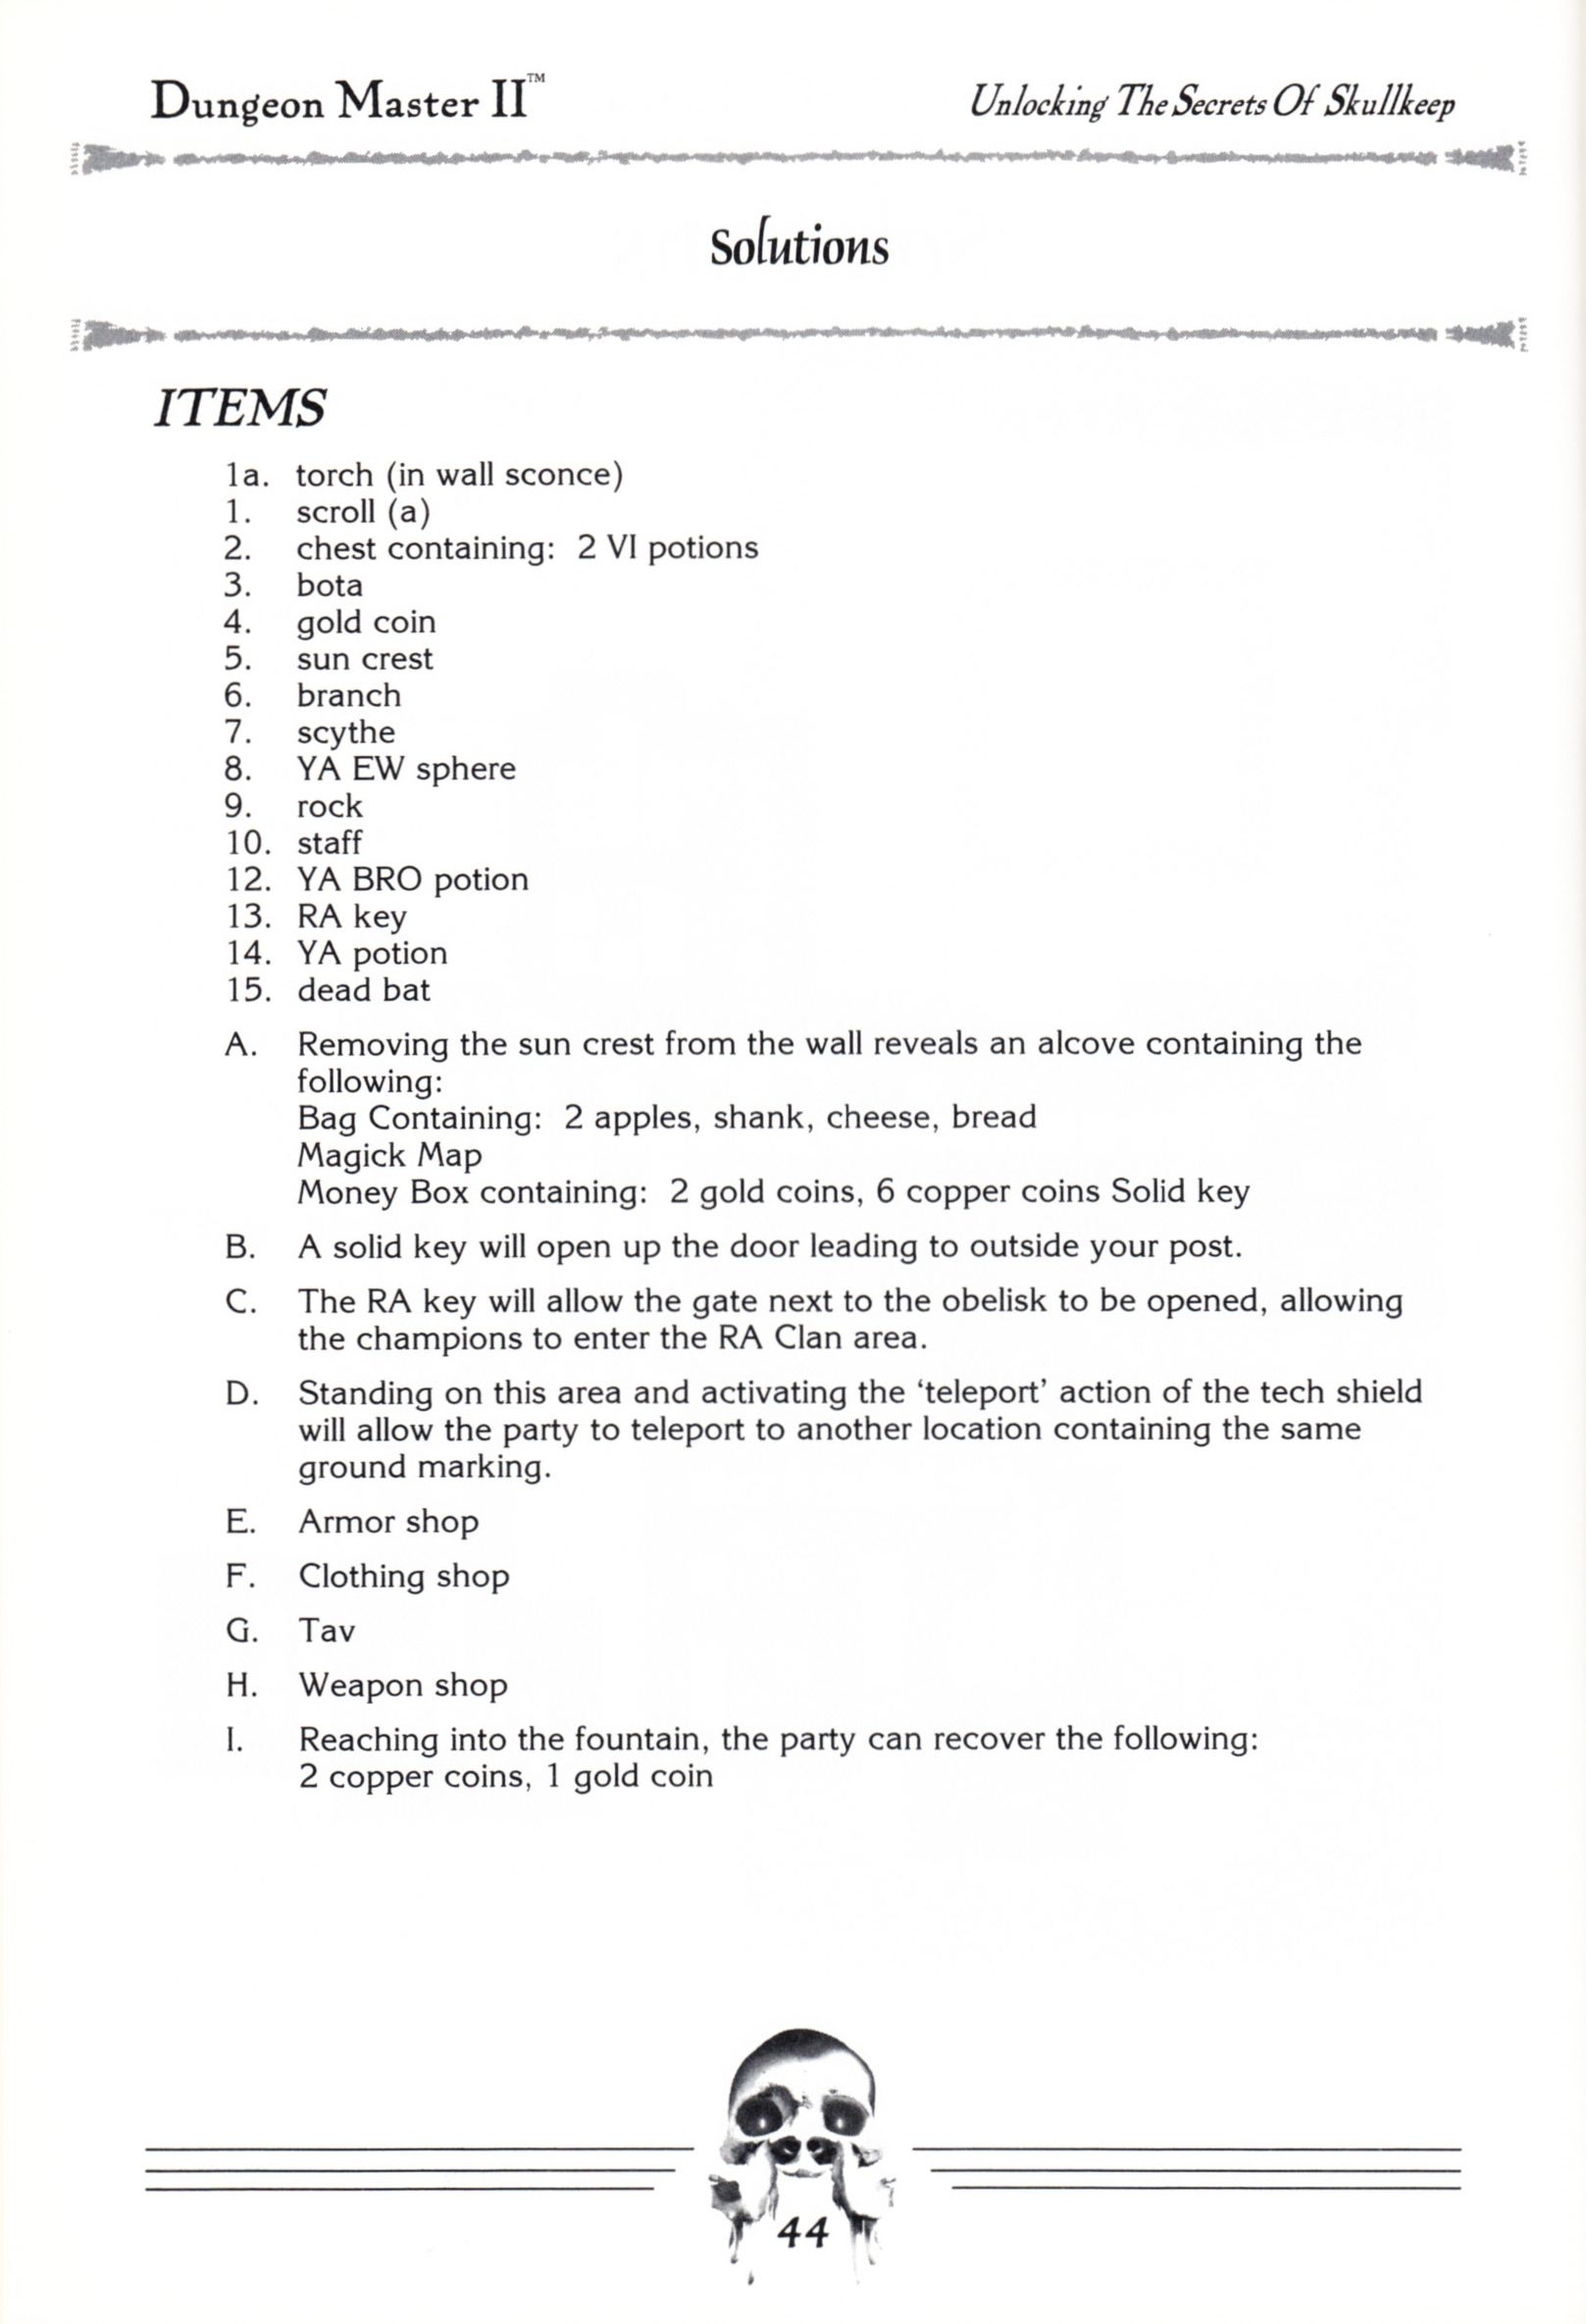 Hint Book - Dungeon Master II Clue Book - US - Page 046 - Scan